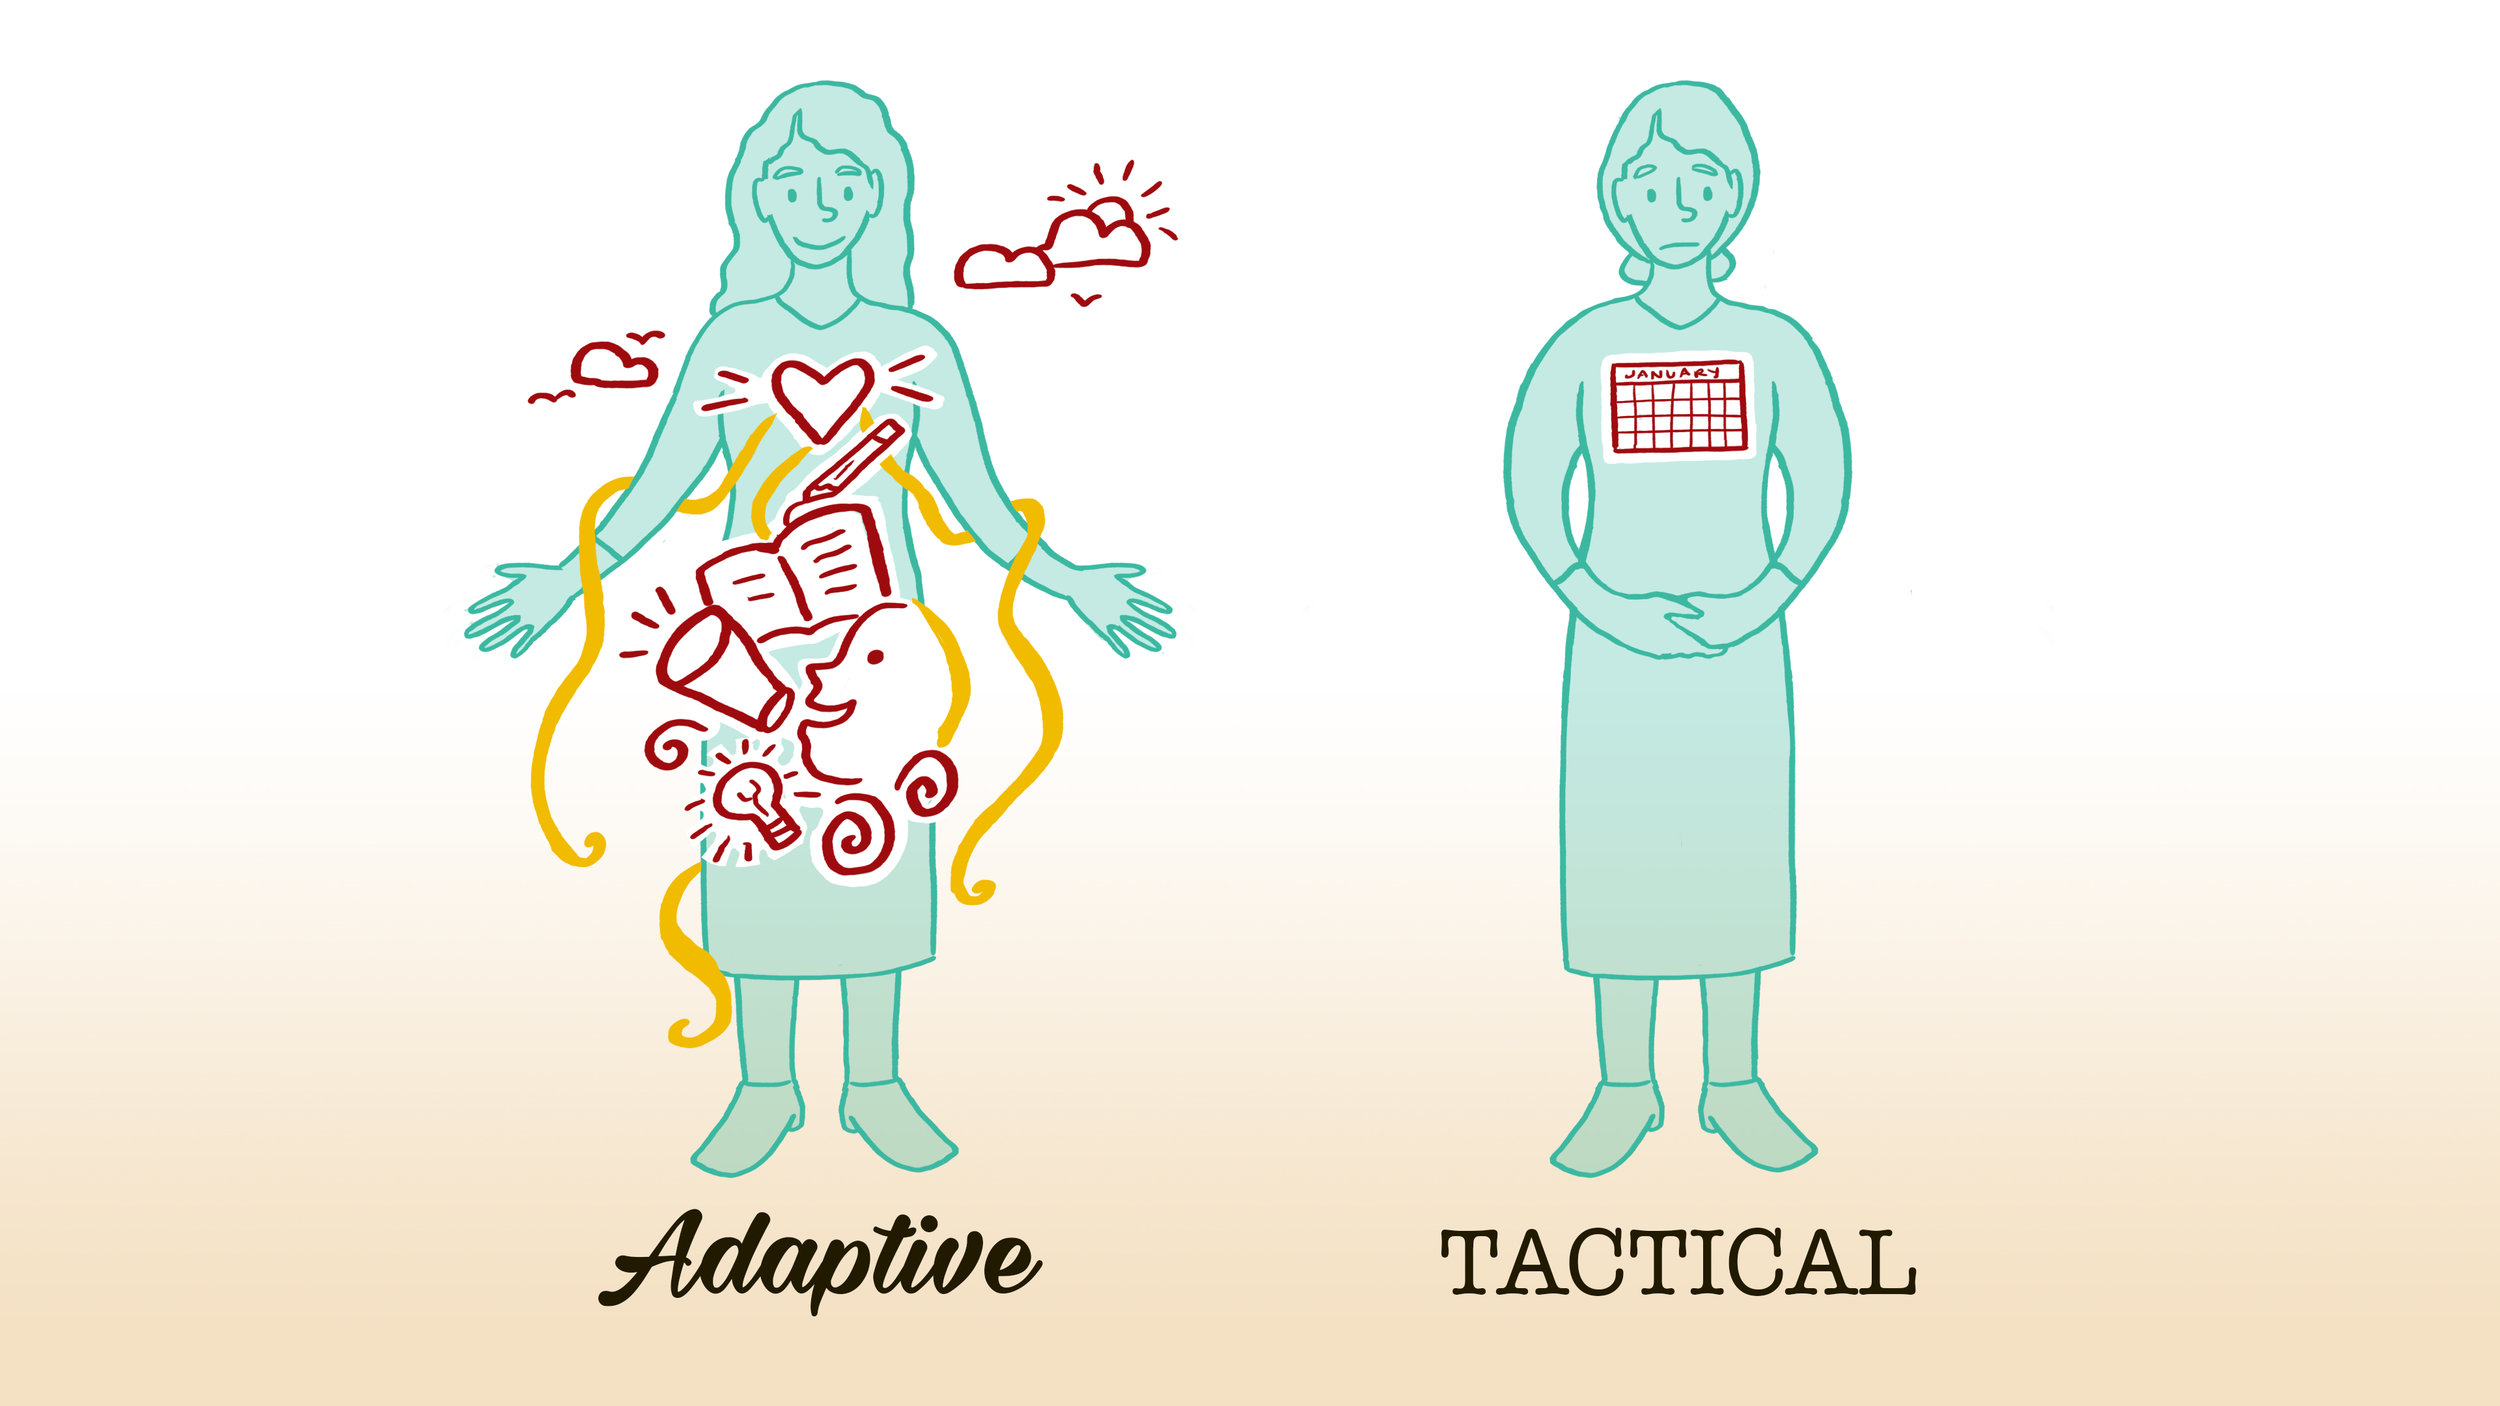 Adaptive/Tactical